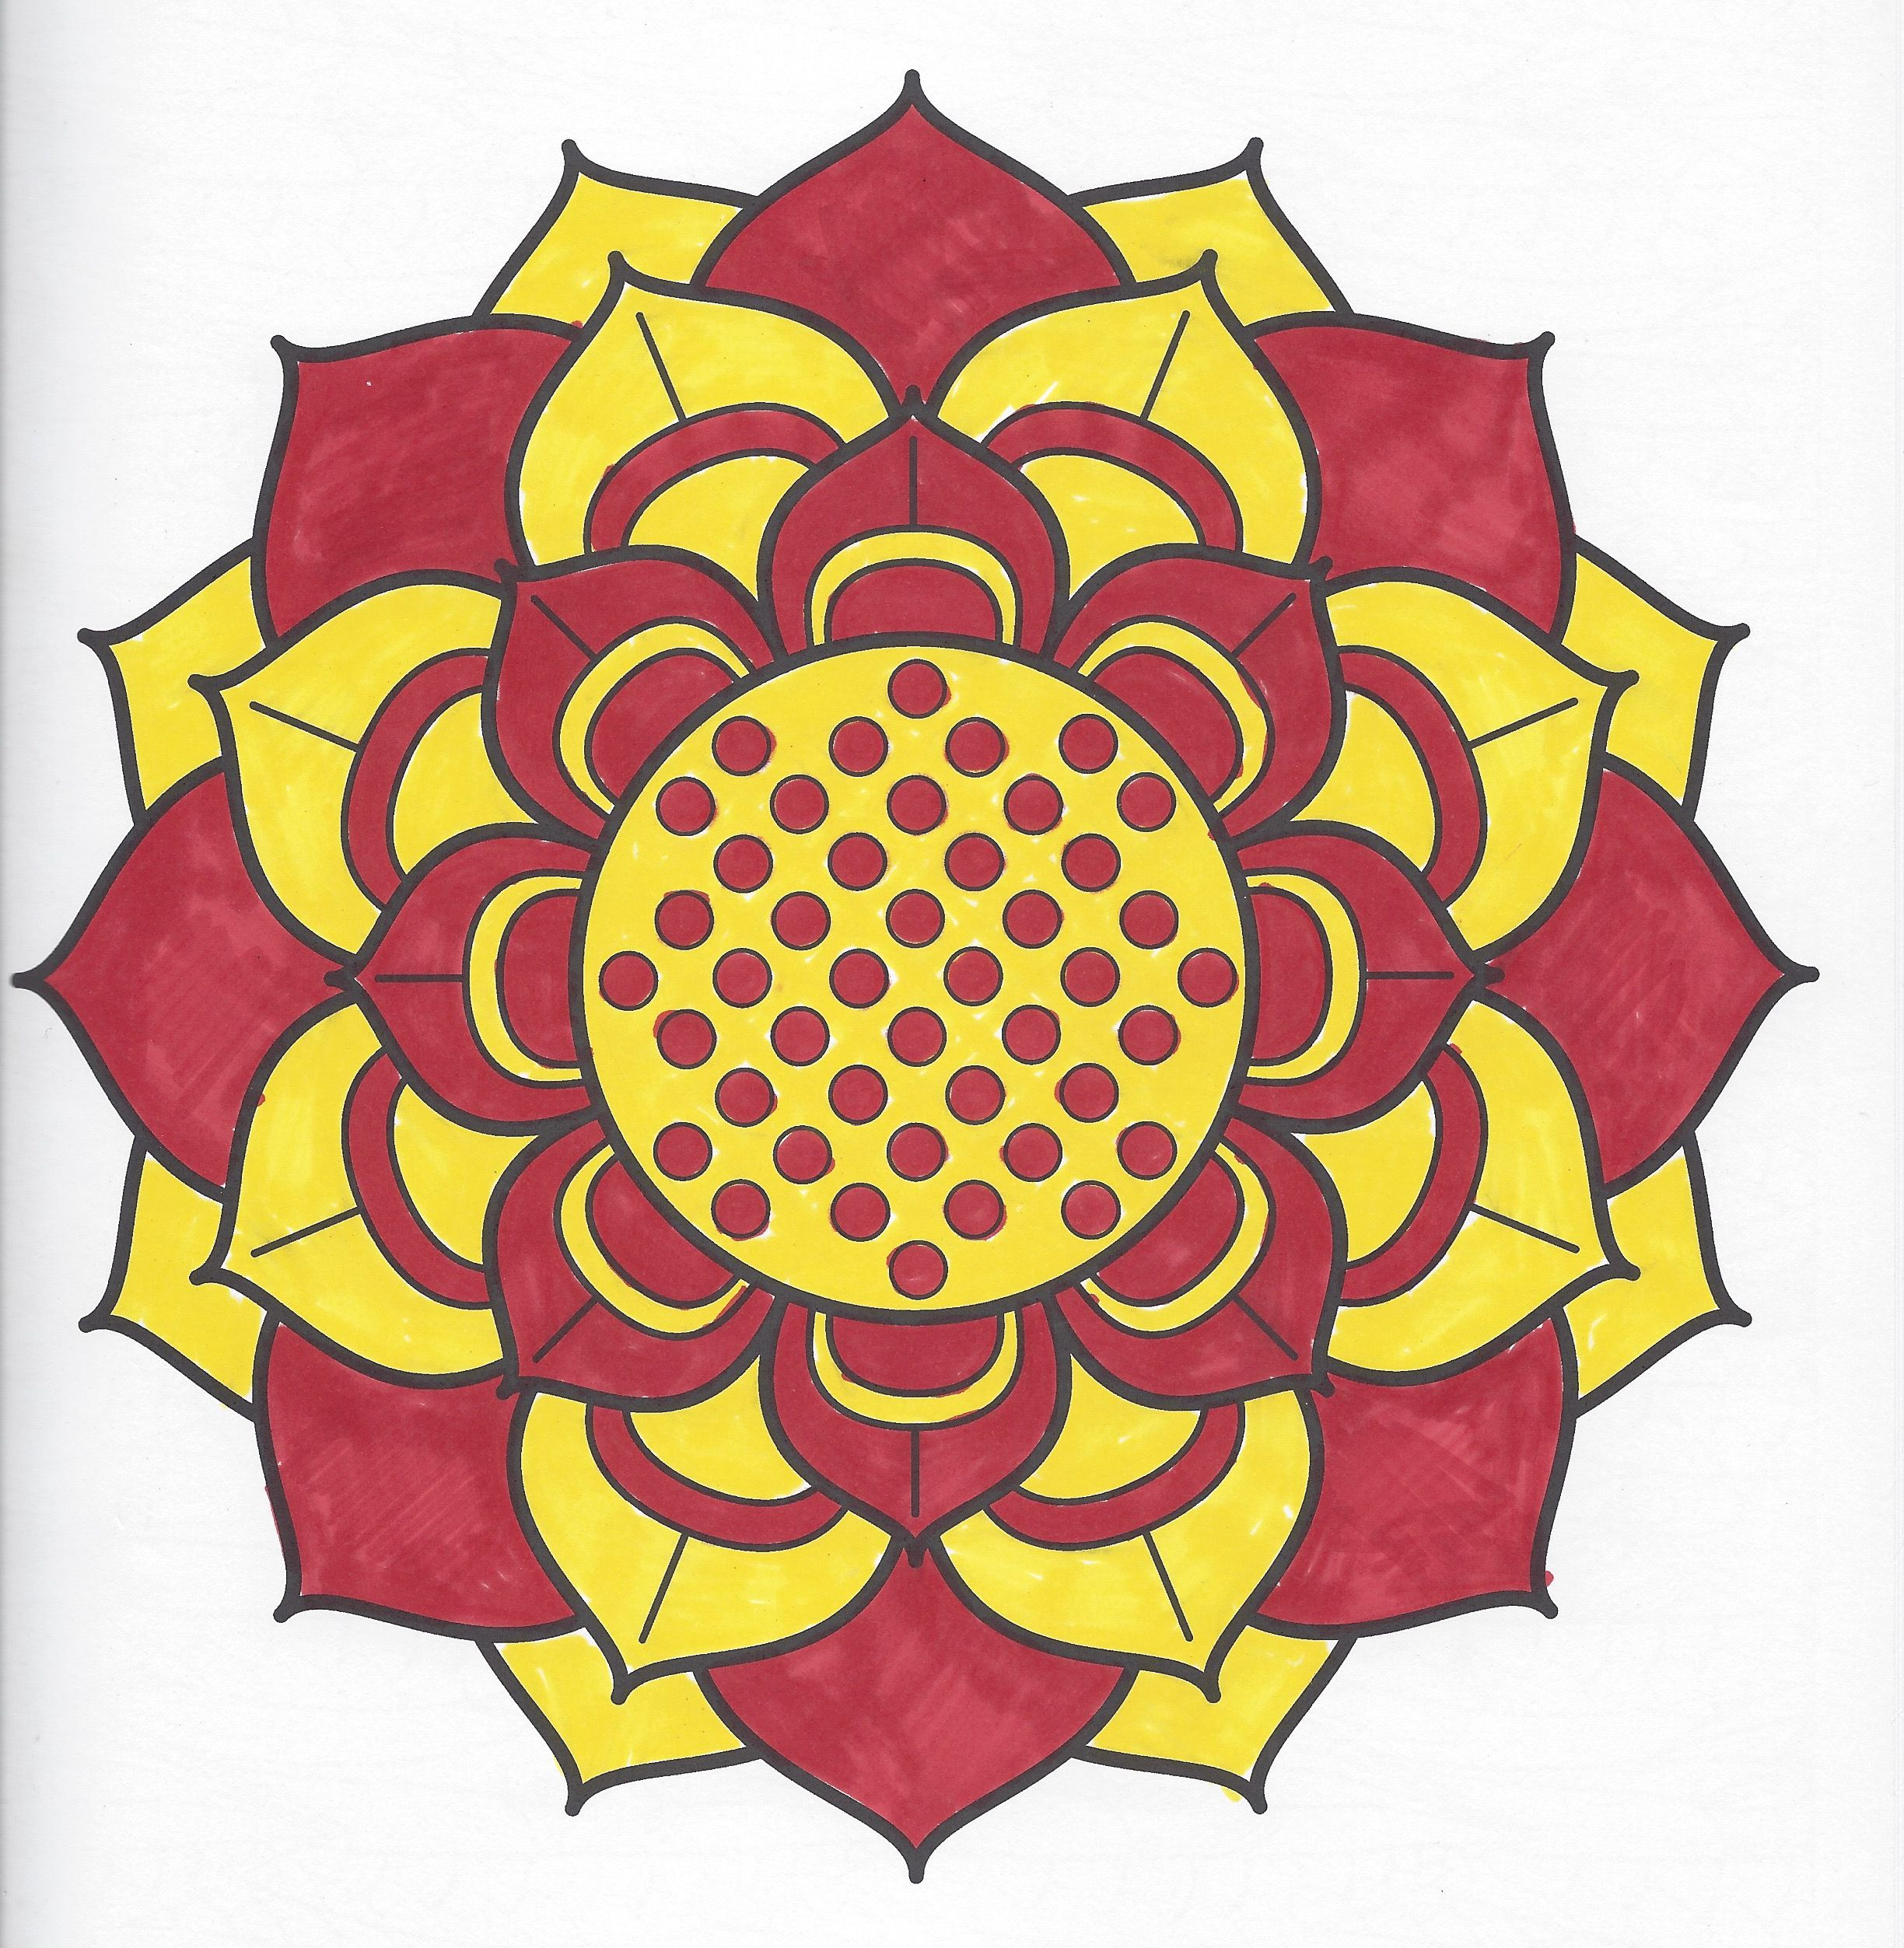 Red and Yellow Flower Mandala Page can be found in Meditation ...